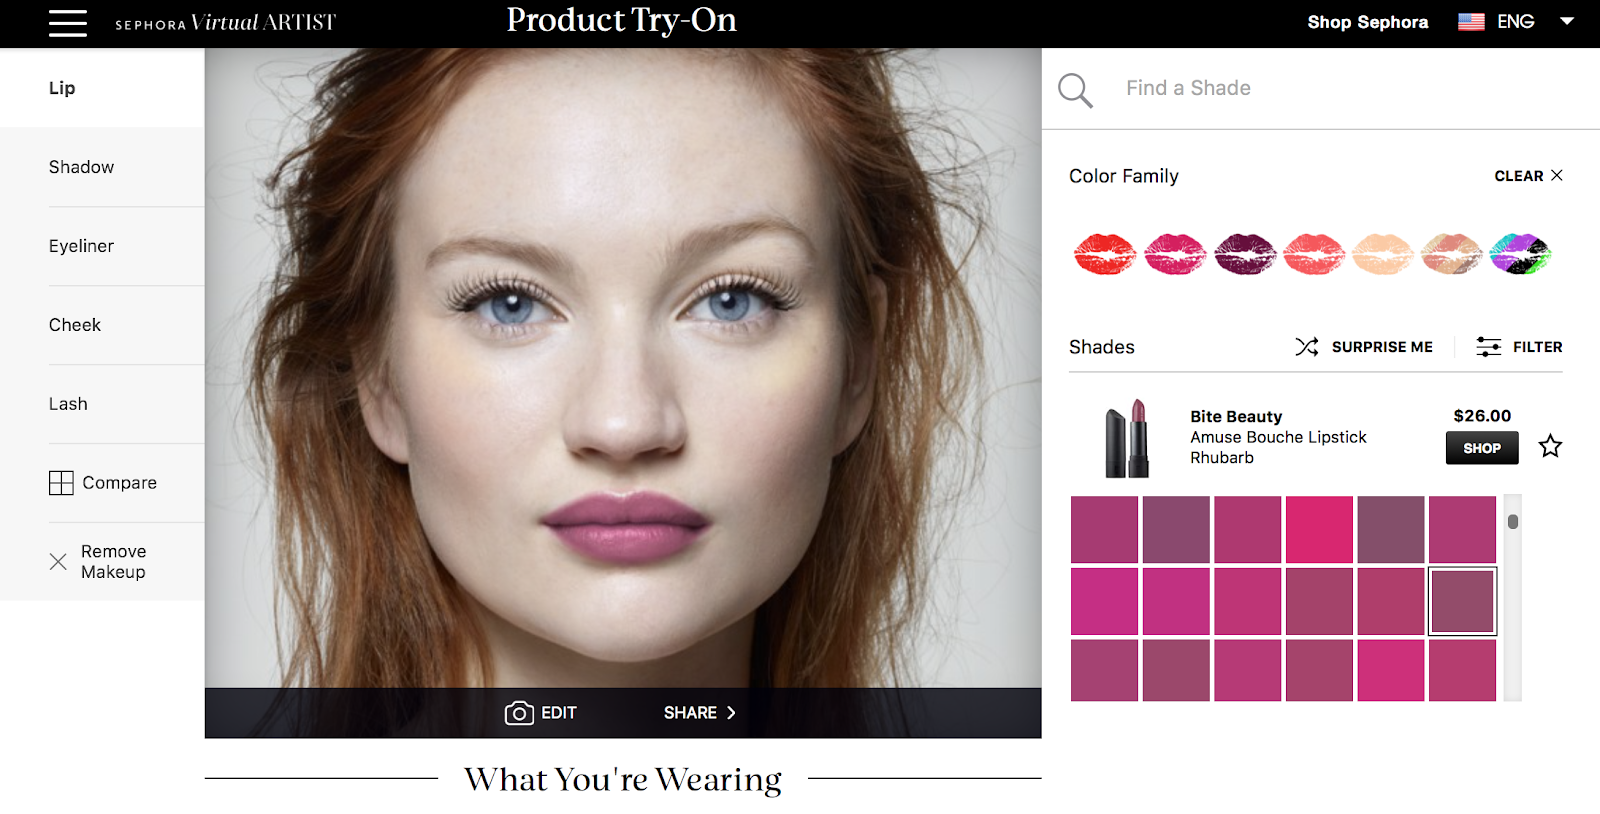 Digital Face Beautification: Trends, Insights And